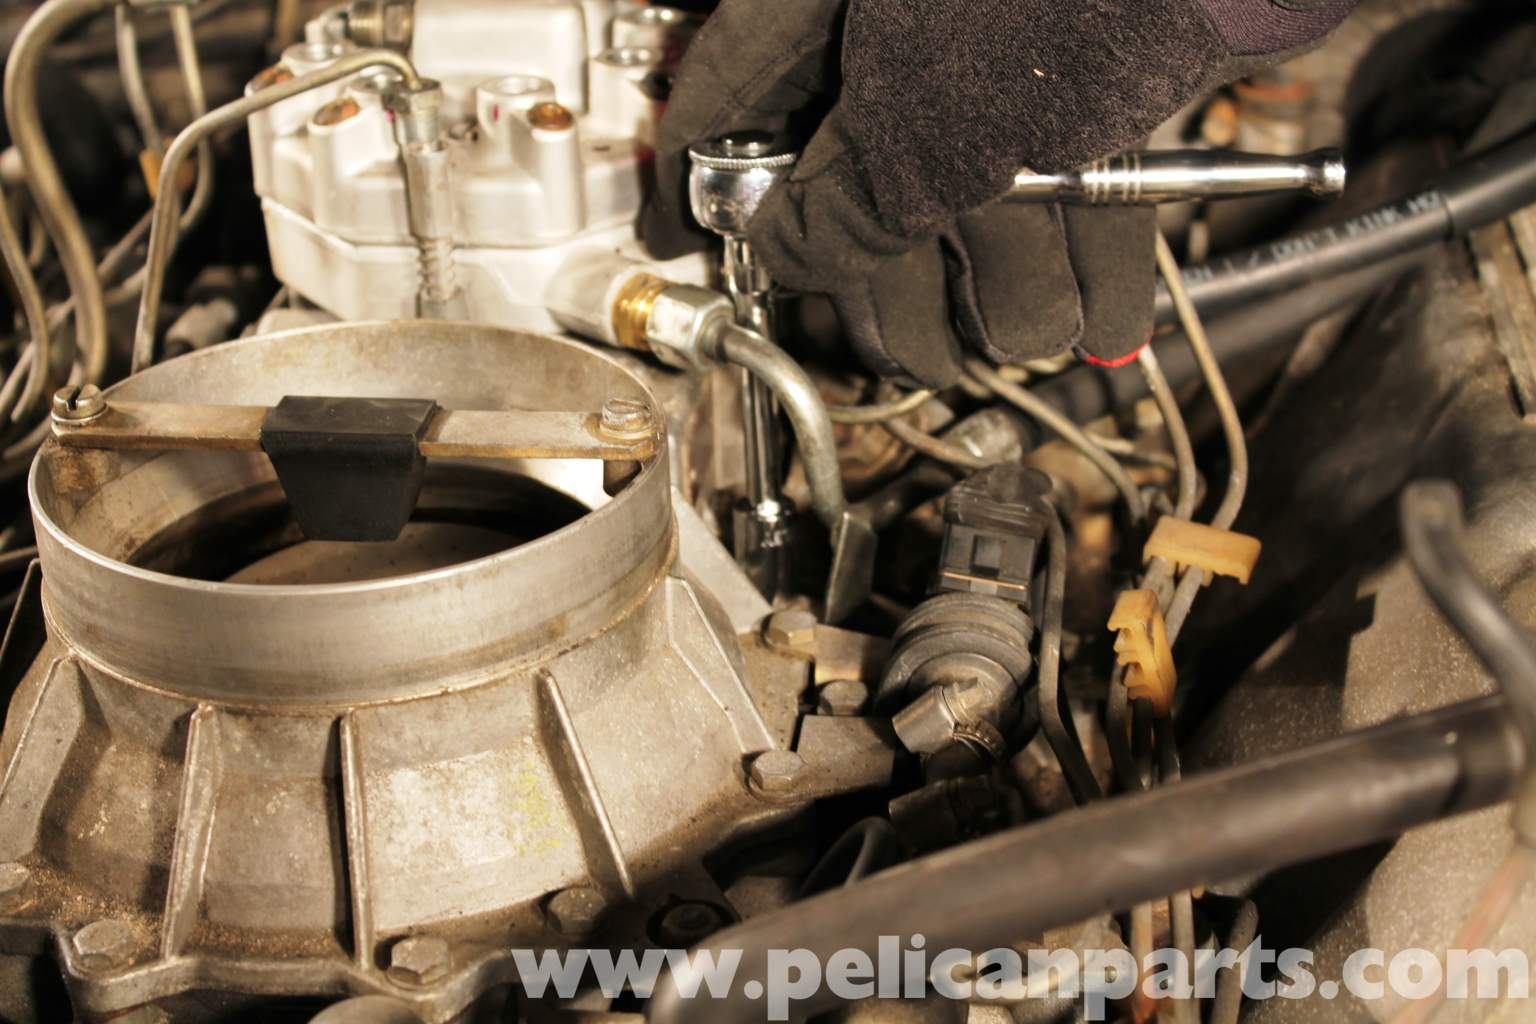 Mercedes benz r107 fuel distributor replacement 1972 for Fuel distributor for mercedes benz